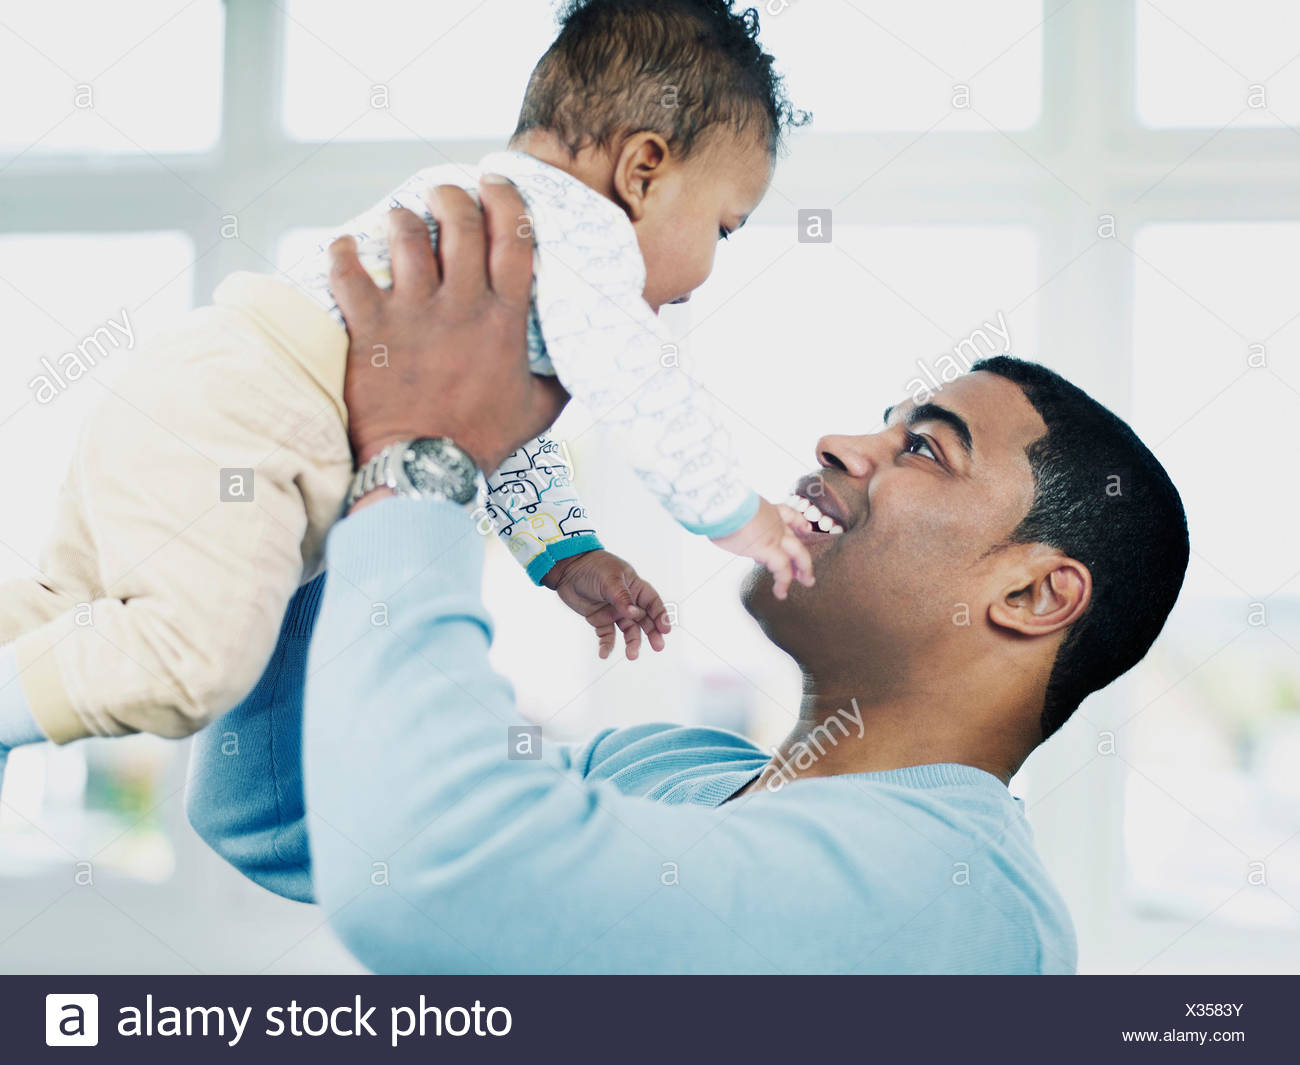 Father lifting baby boy - Stock Image